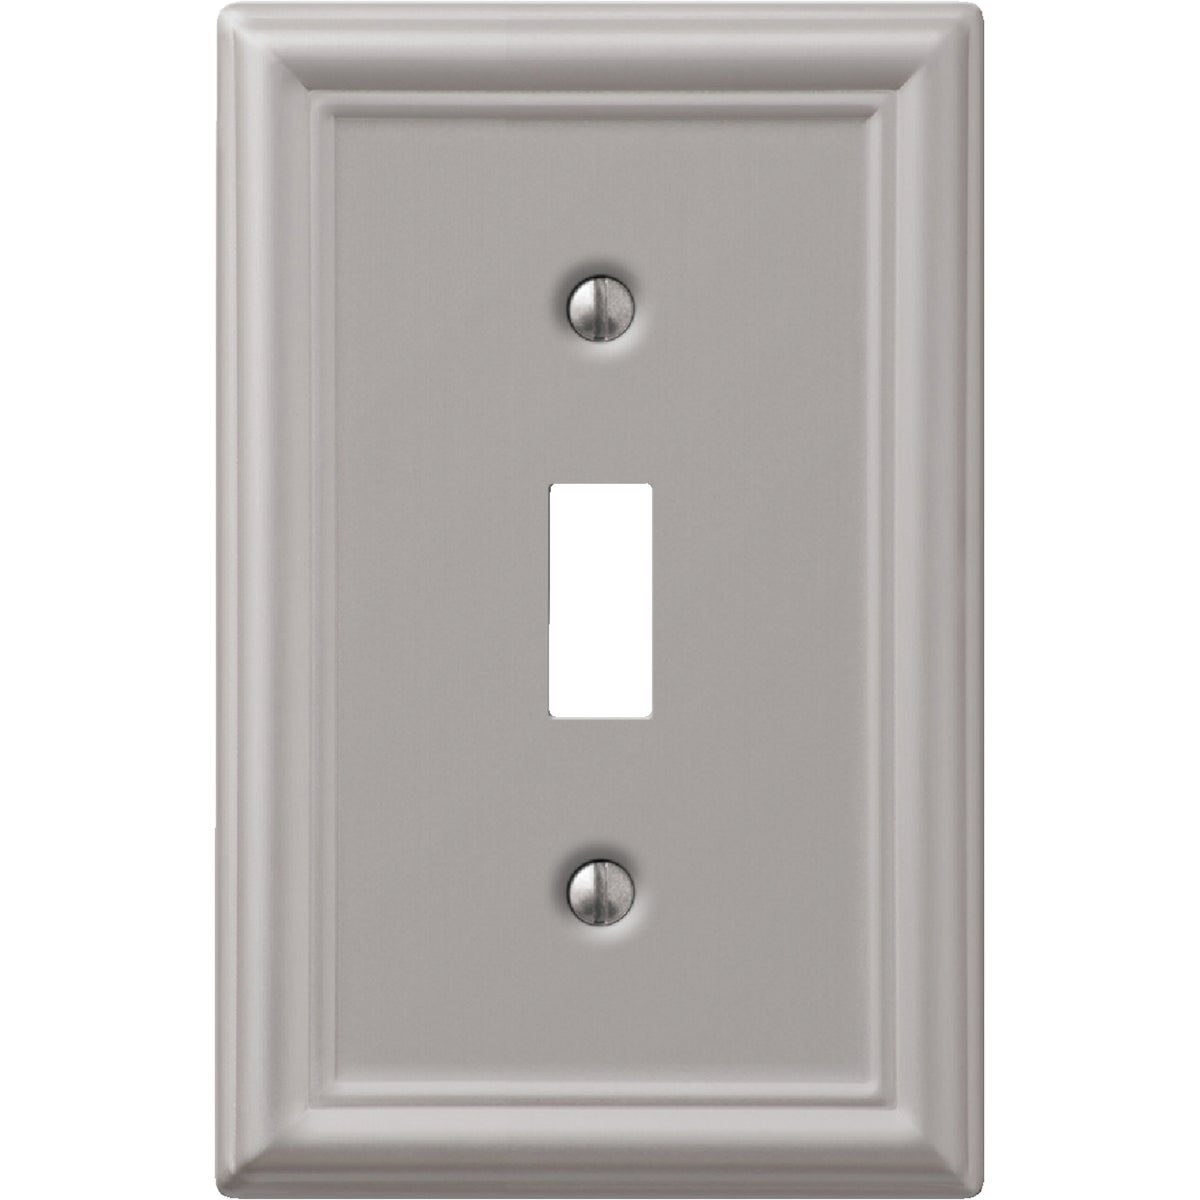 1 TGL BN WALLPLATE - 9LBN101 by Jackson Deerfield Mf